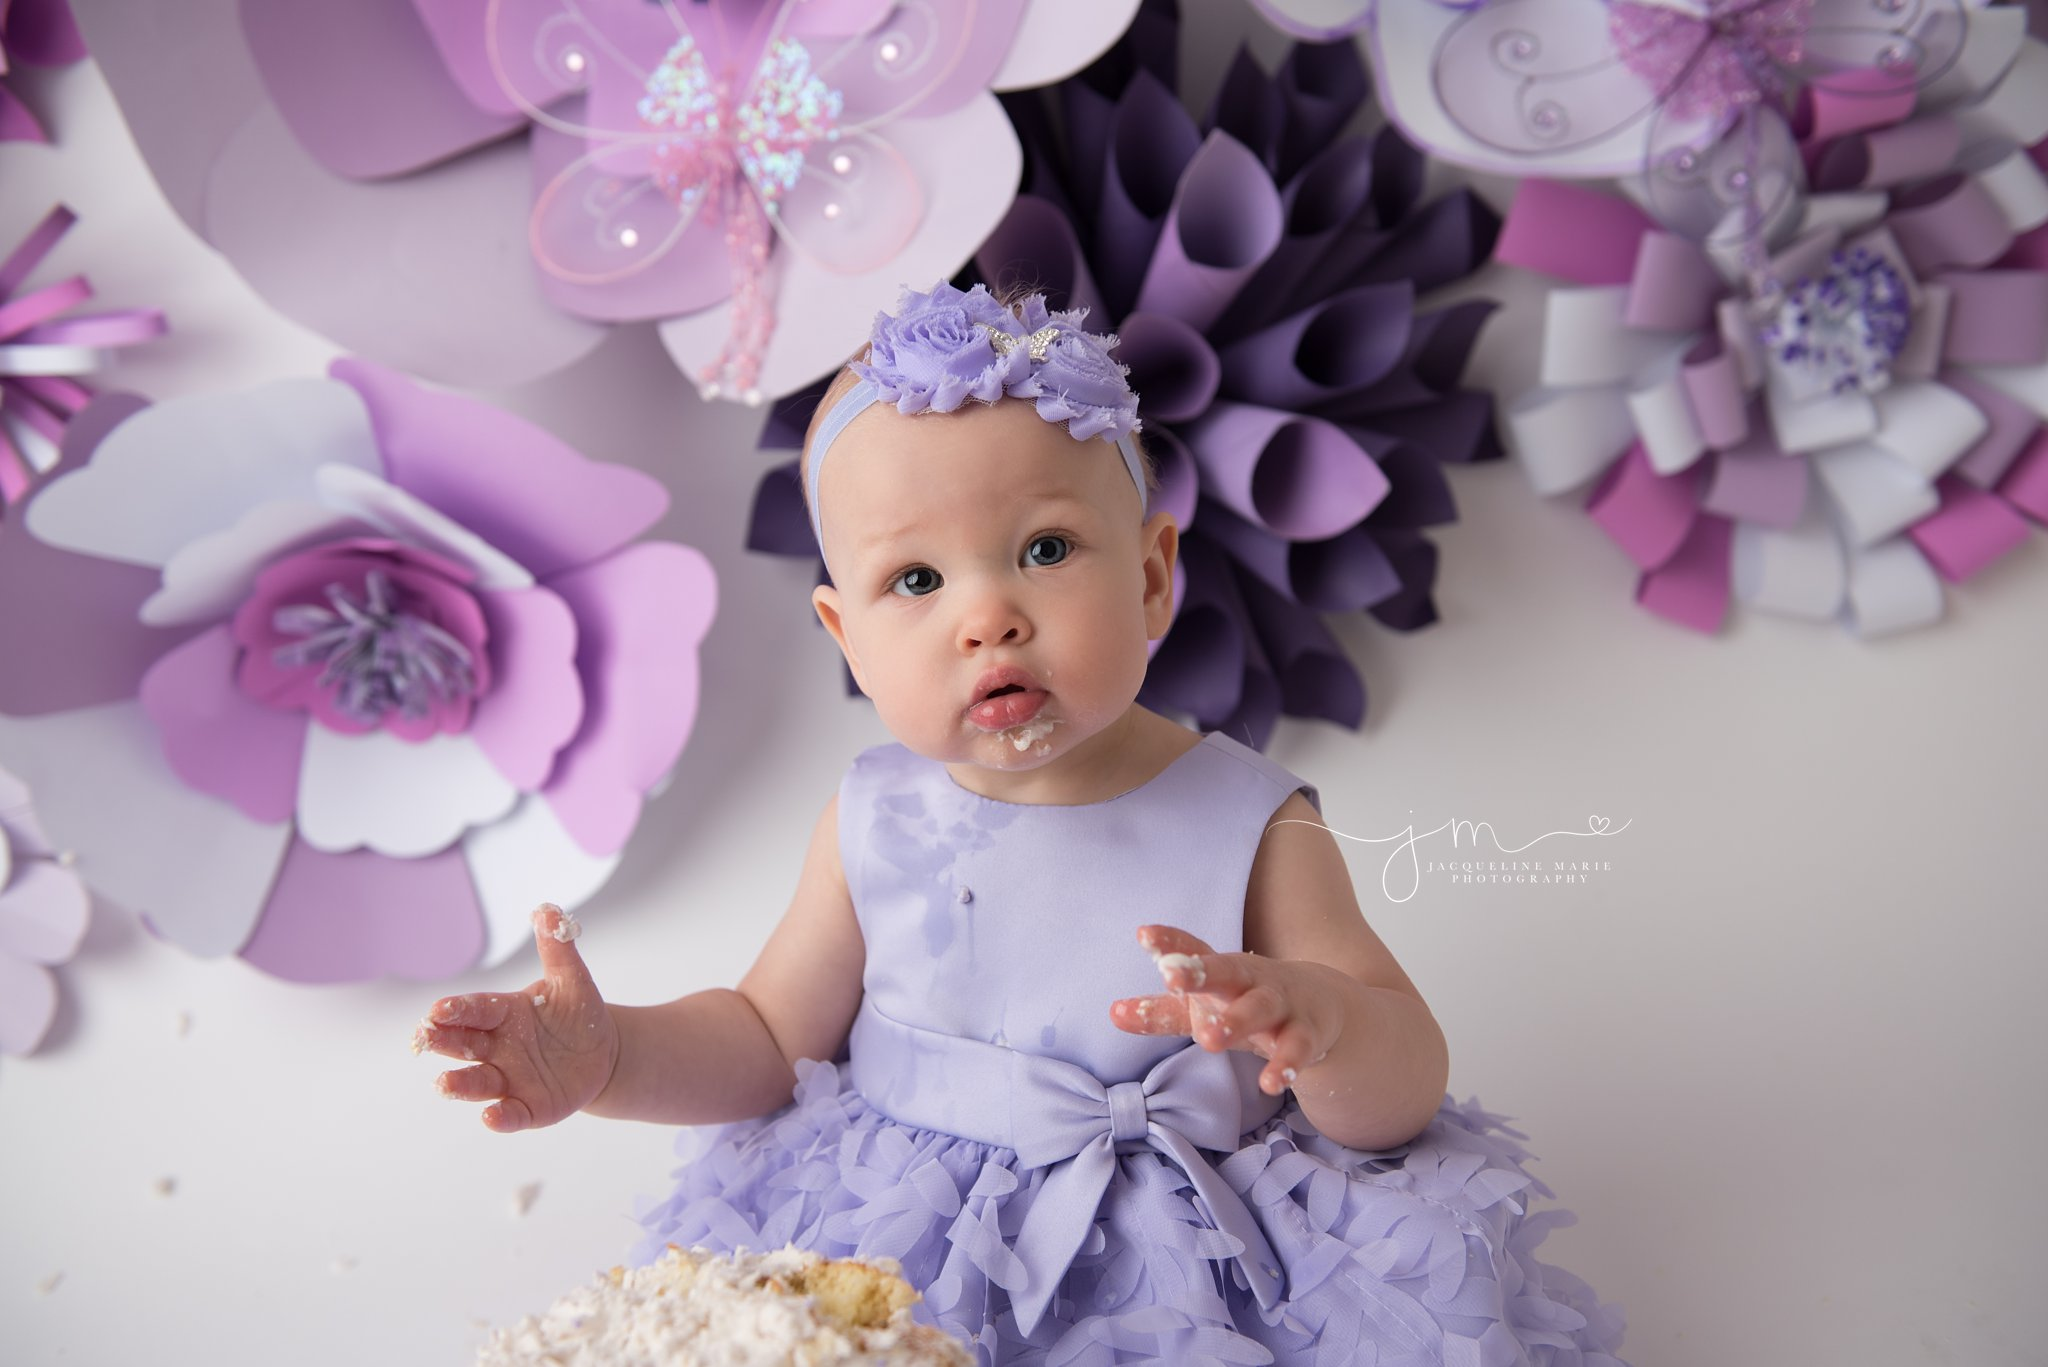 columbus ohio first birthday photographer features image of baby girl eating cake for first birthday pictures